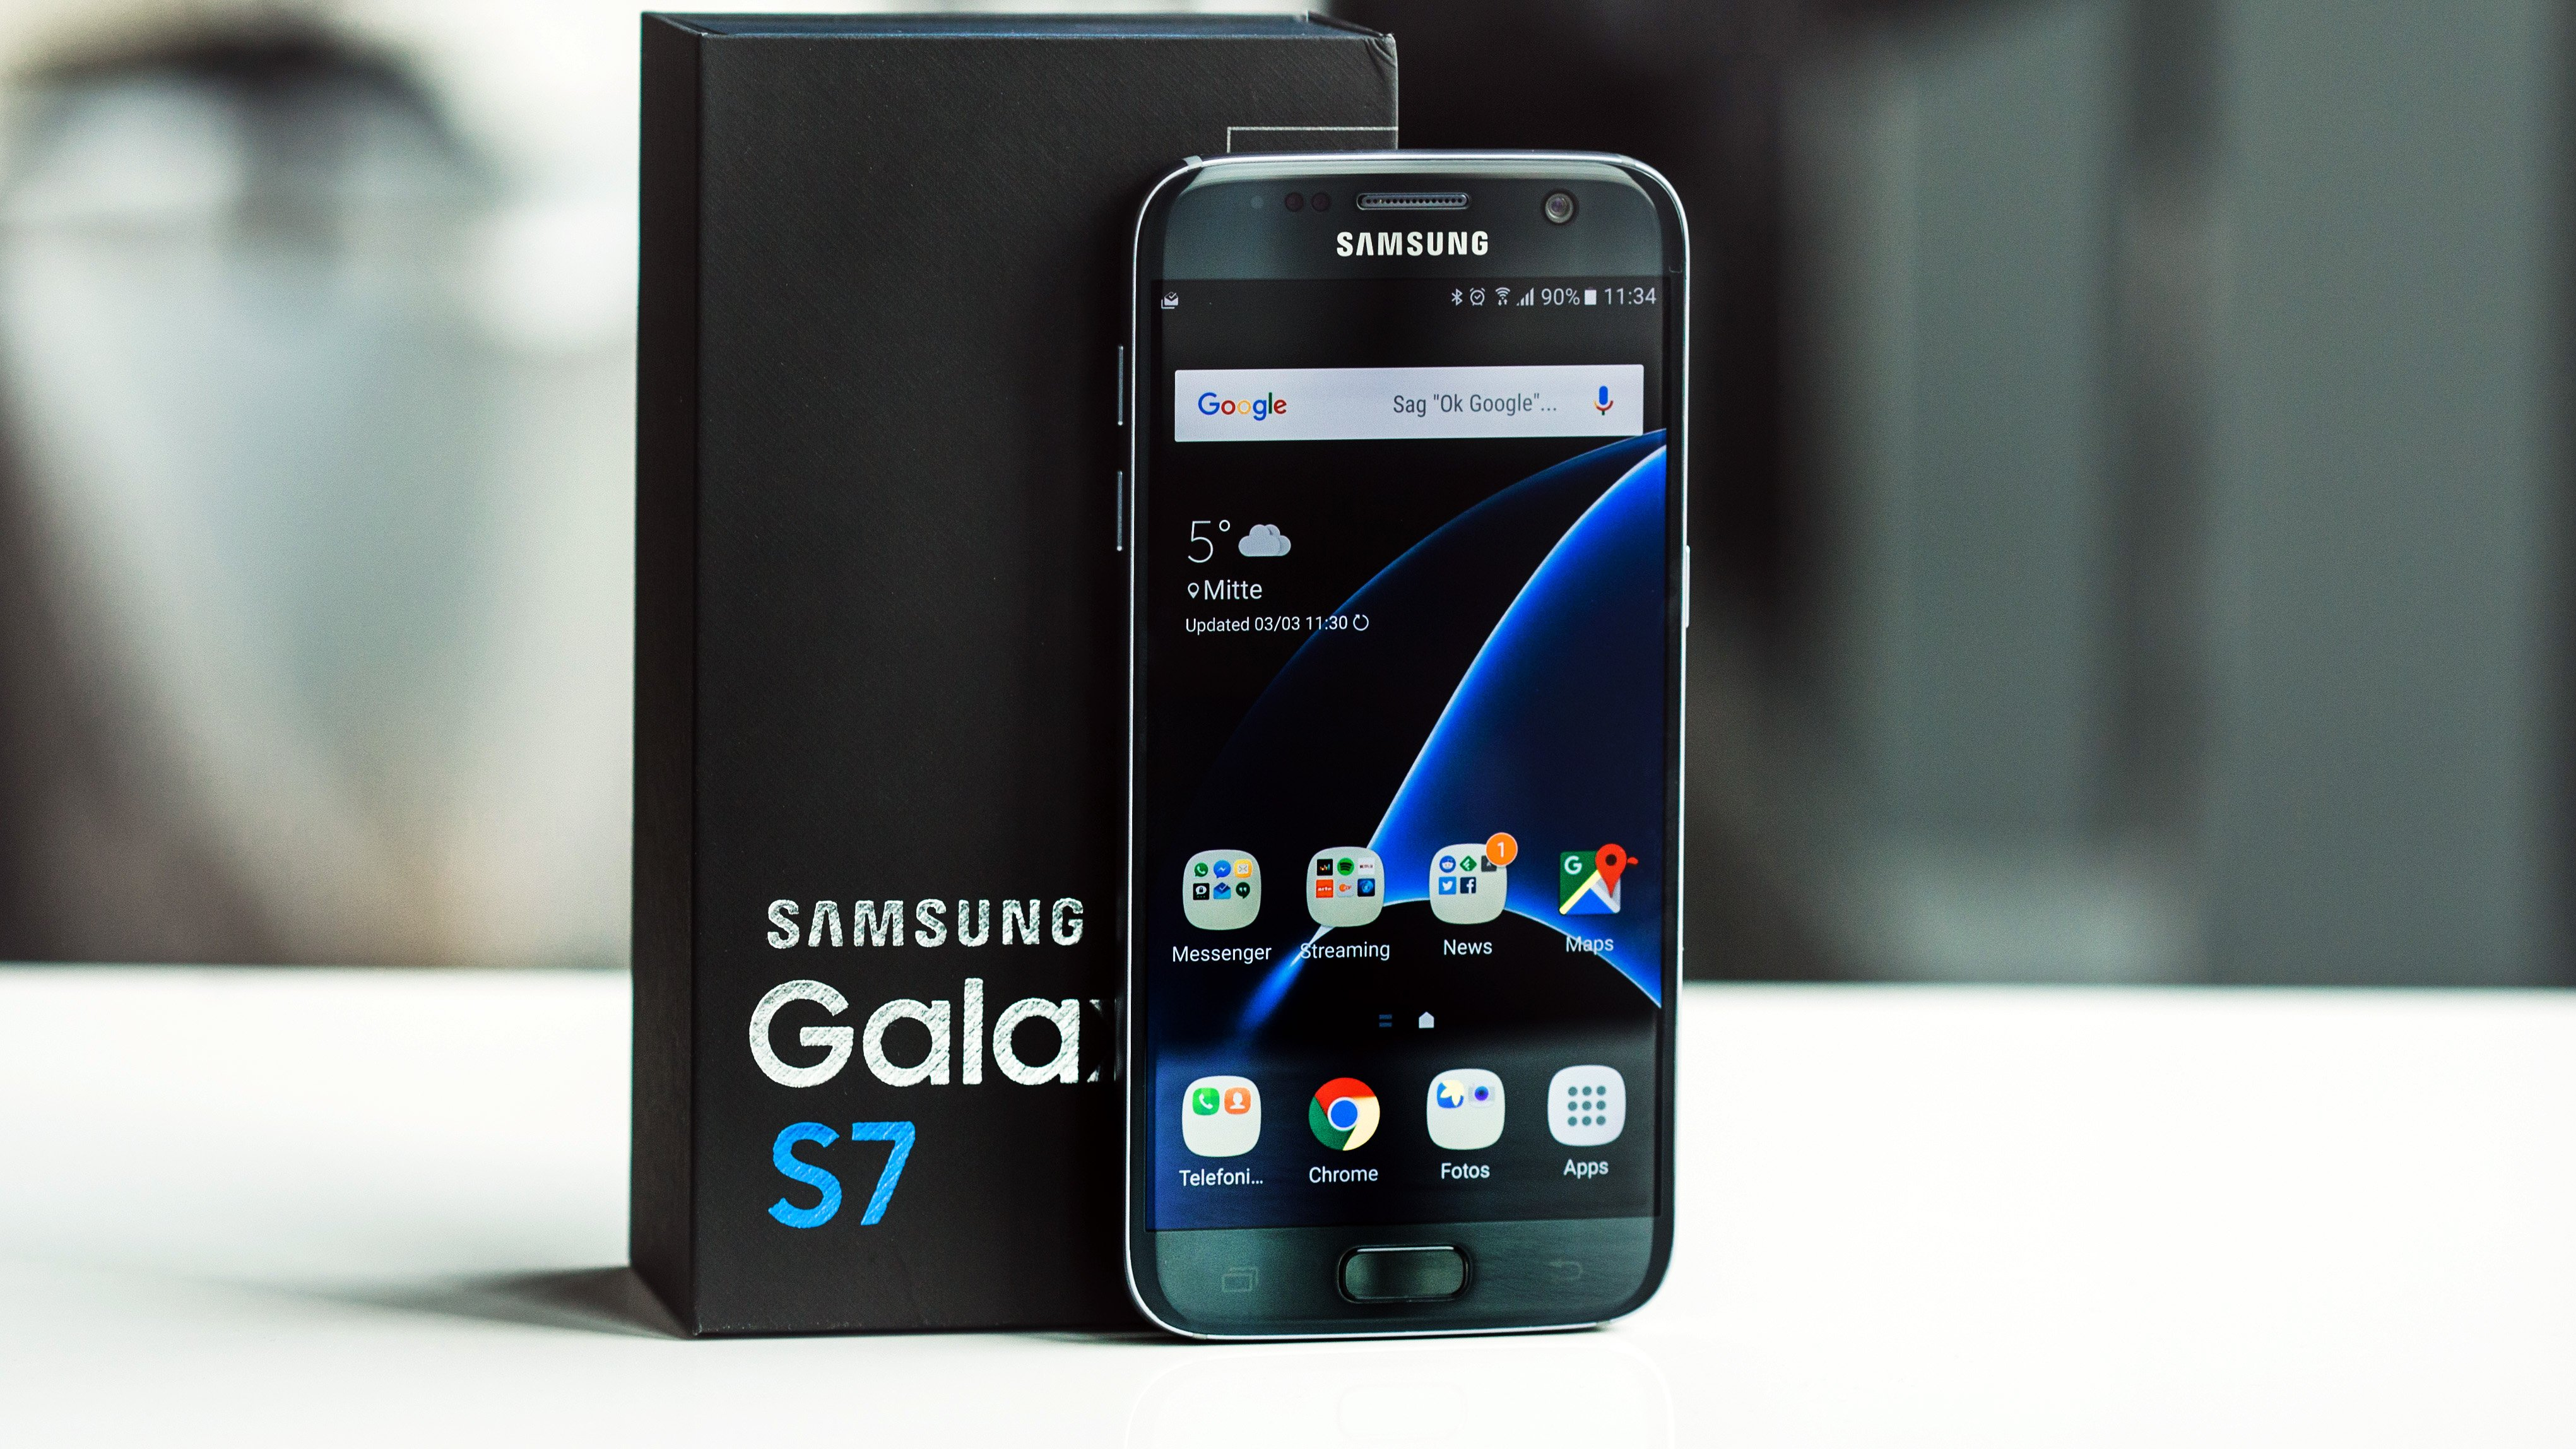 The Latest Update In Samsung Galaxy S7 And Samsung Galaxy